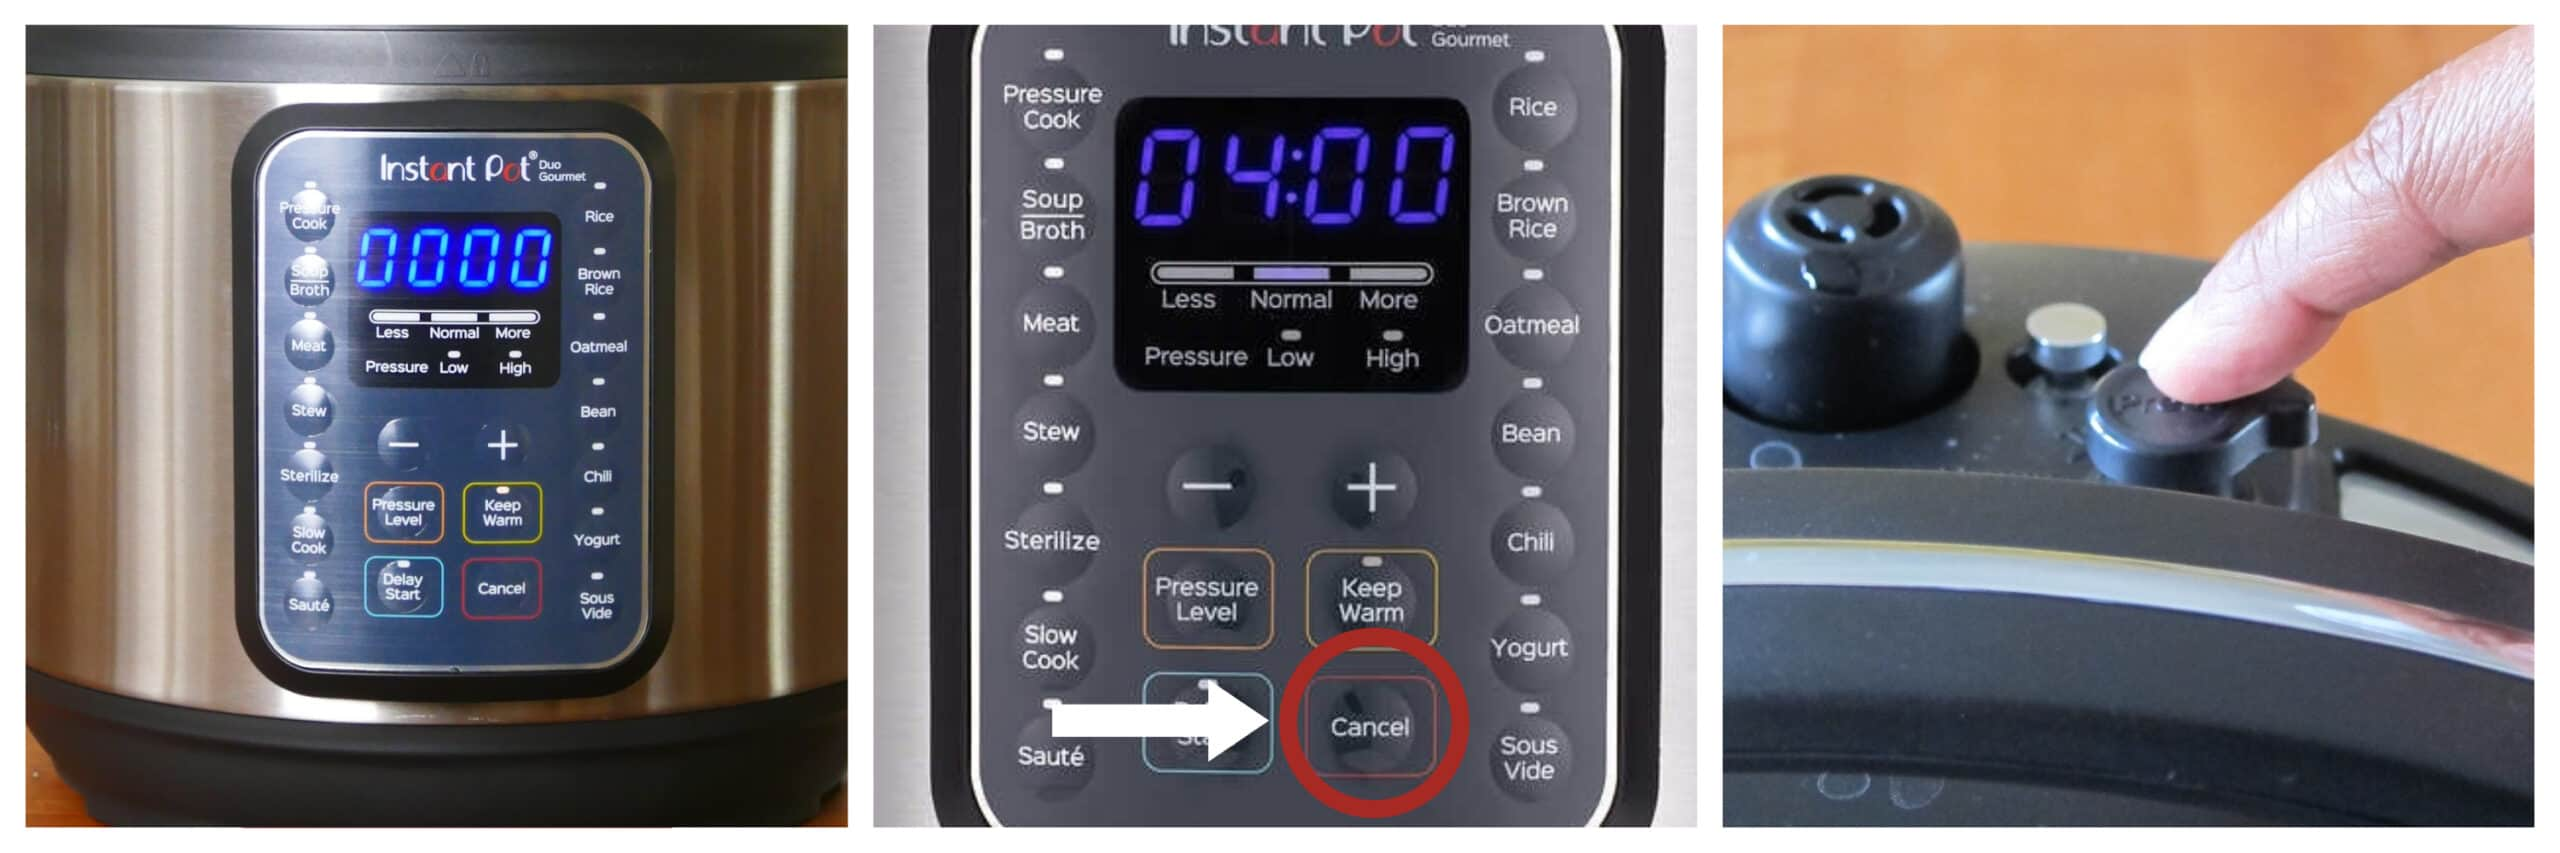 Instant Pot Duo Gourmet display says 0000 cancel pressure steam release button